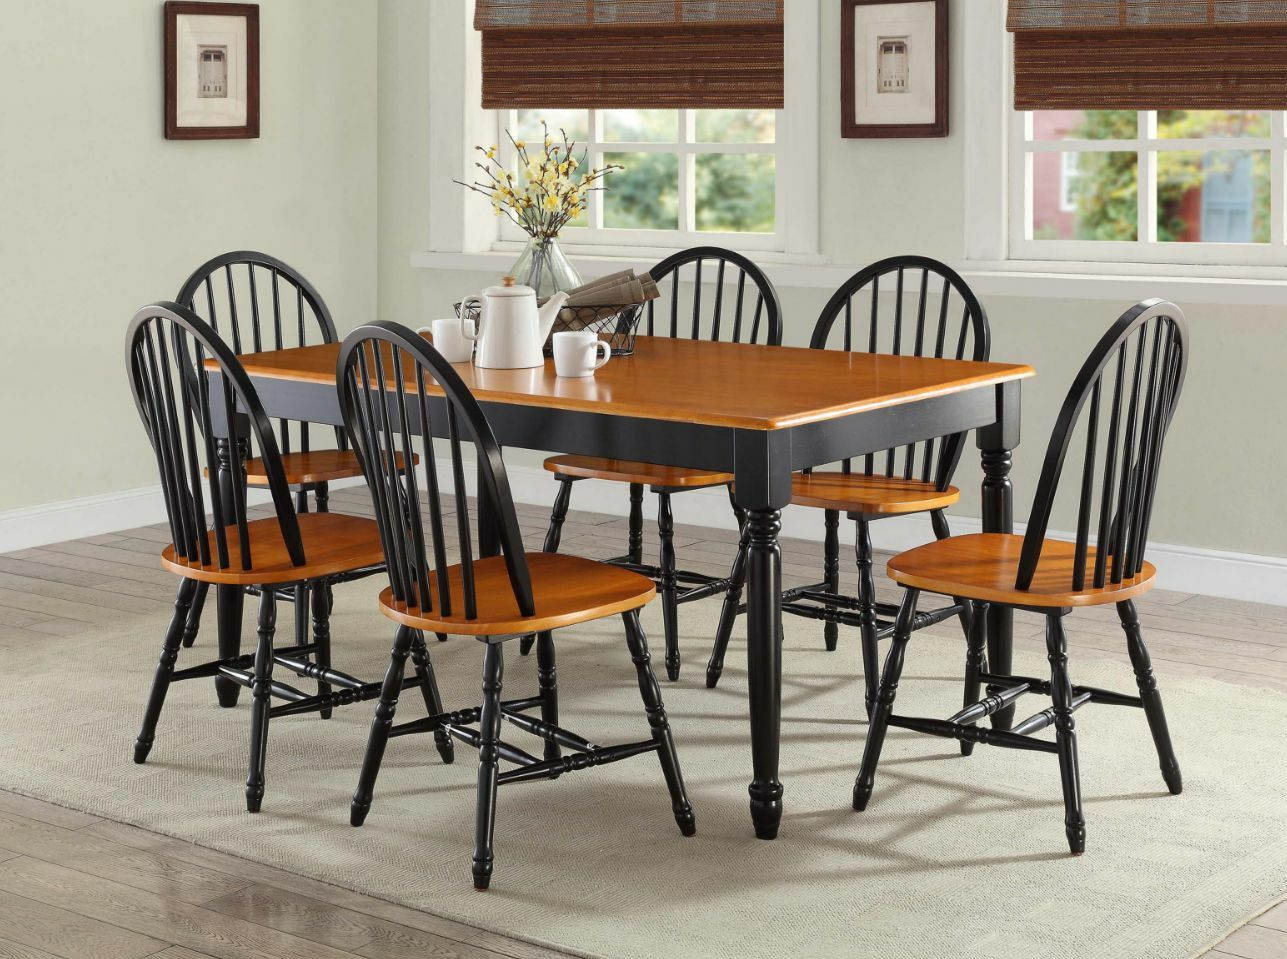 farmhouse dining set 7 pc dining room sets table chairs wood farmhouse 29154